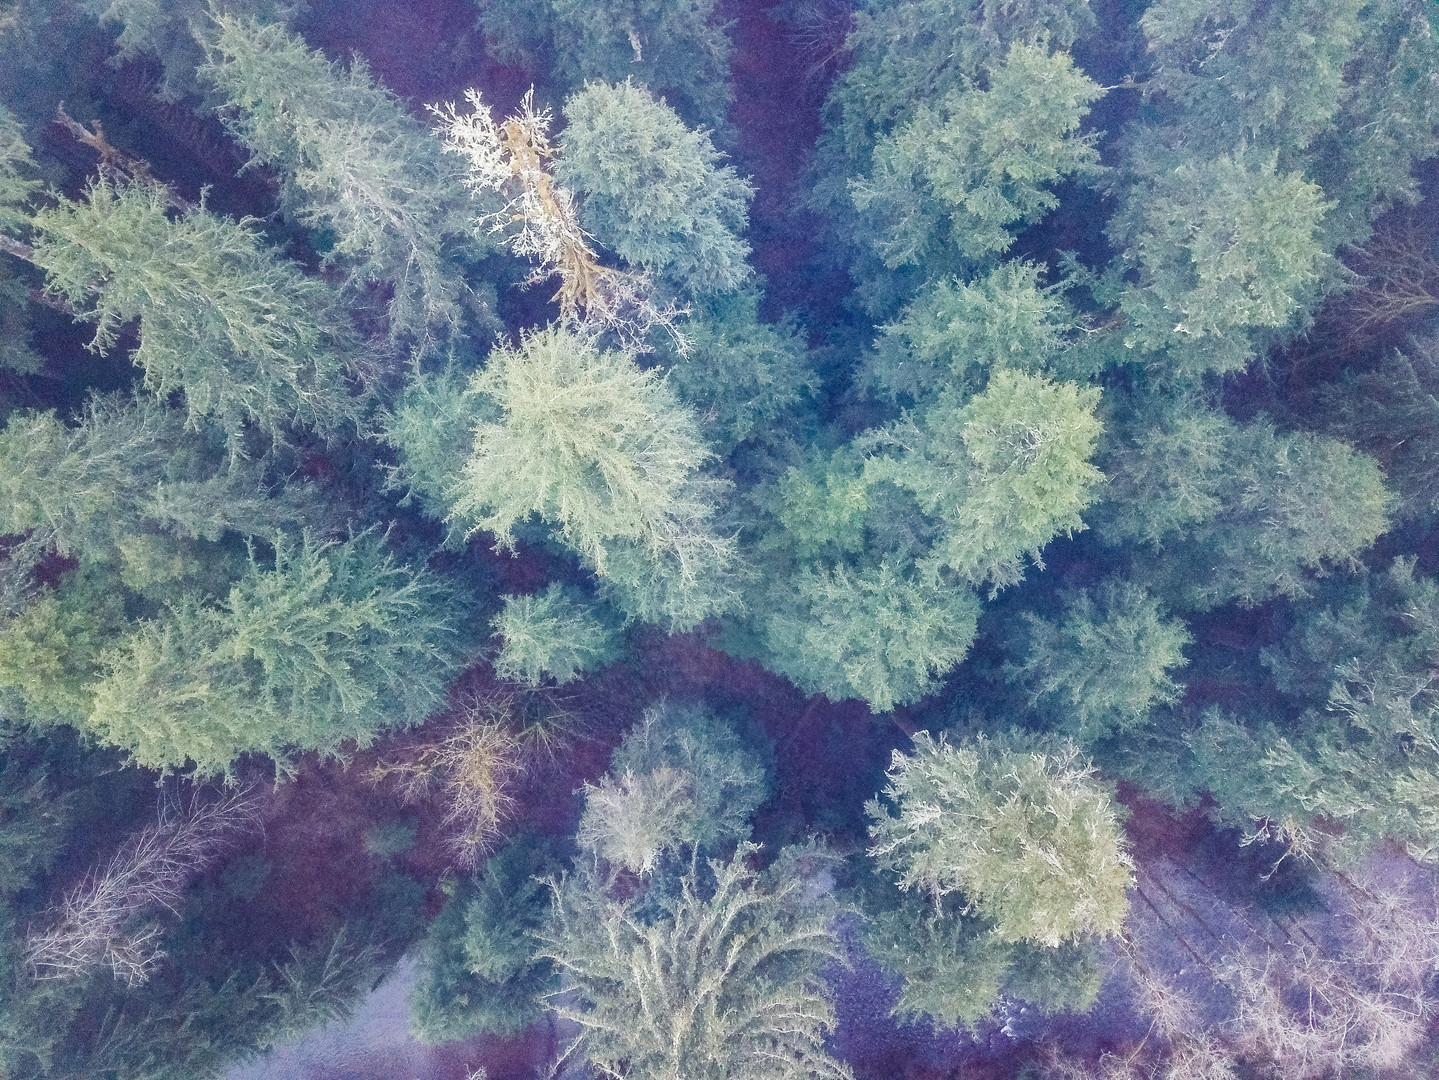 Oregon Forest Drone 2019 Road trip For P